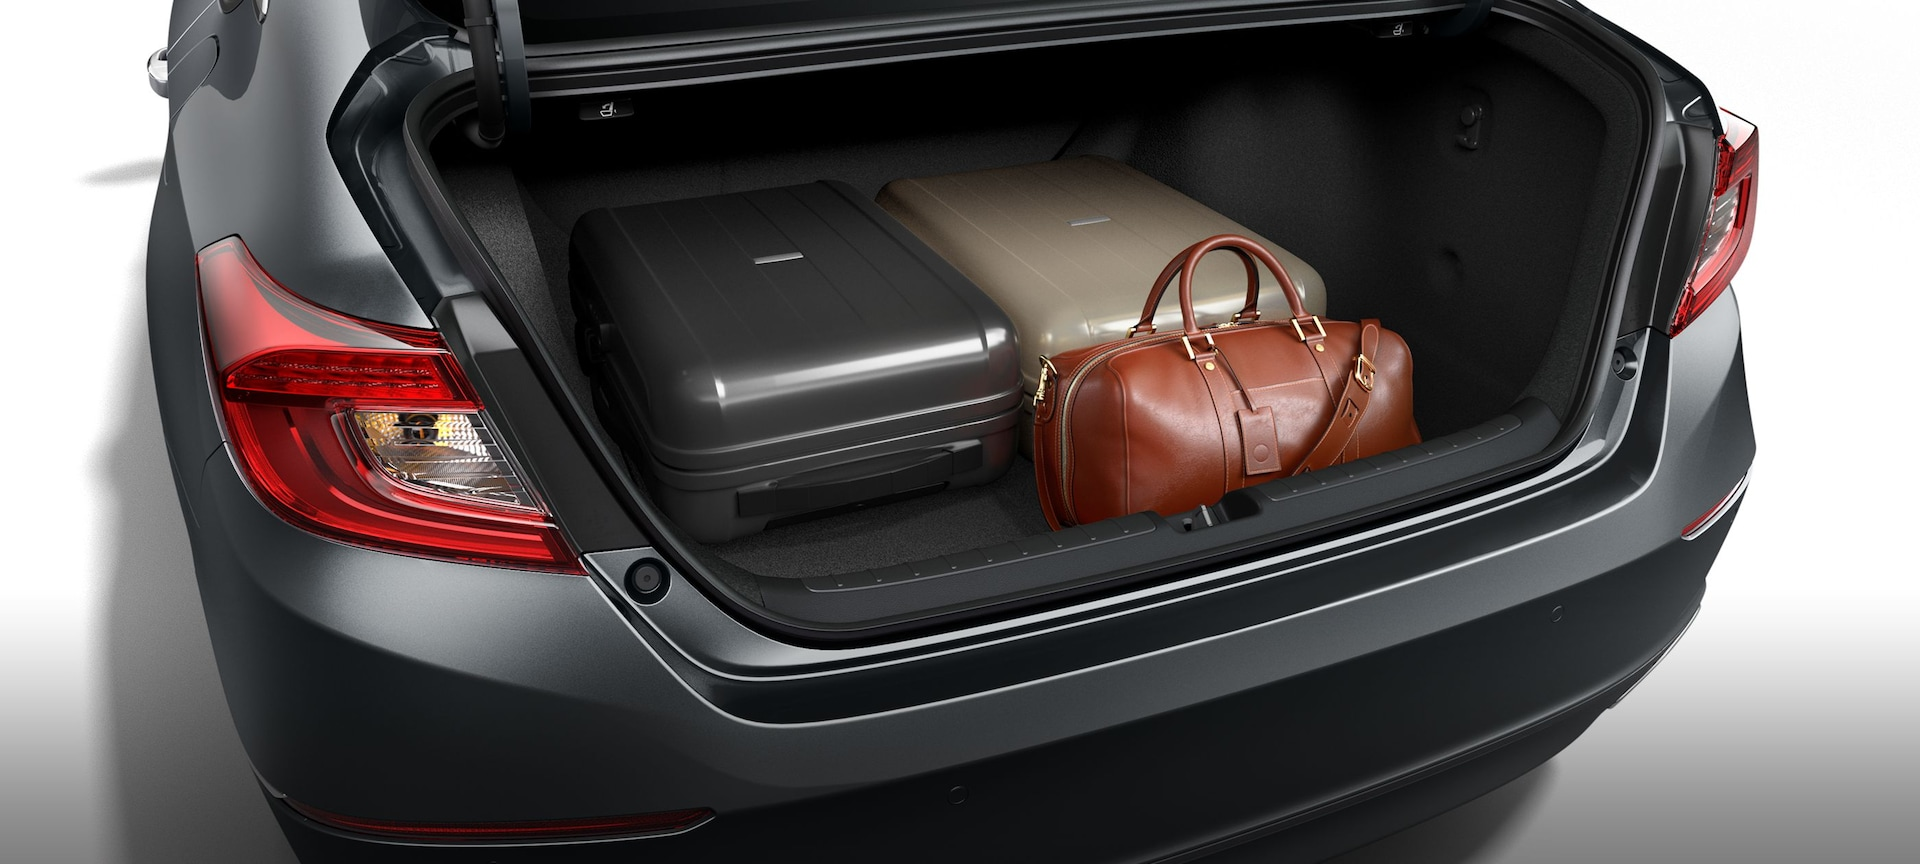 Detail of trunk open with variety of cargo loaded inside the 2019 Honda Accord.